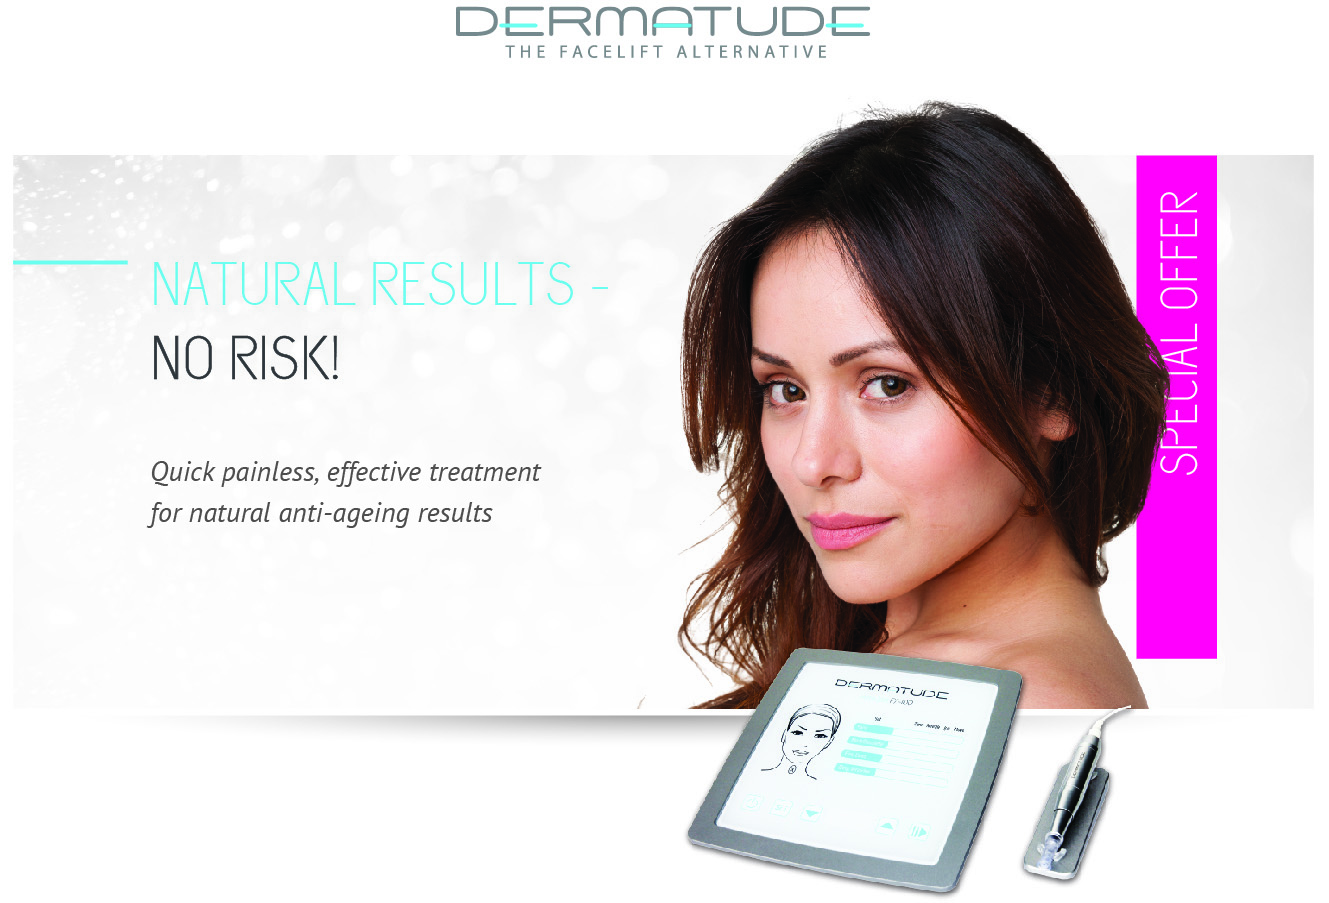 Dermatude – Global Treatment, Great Results